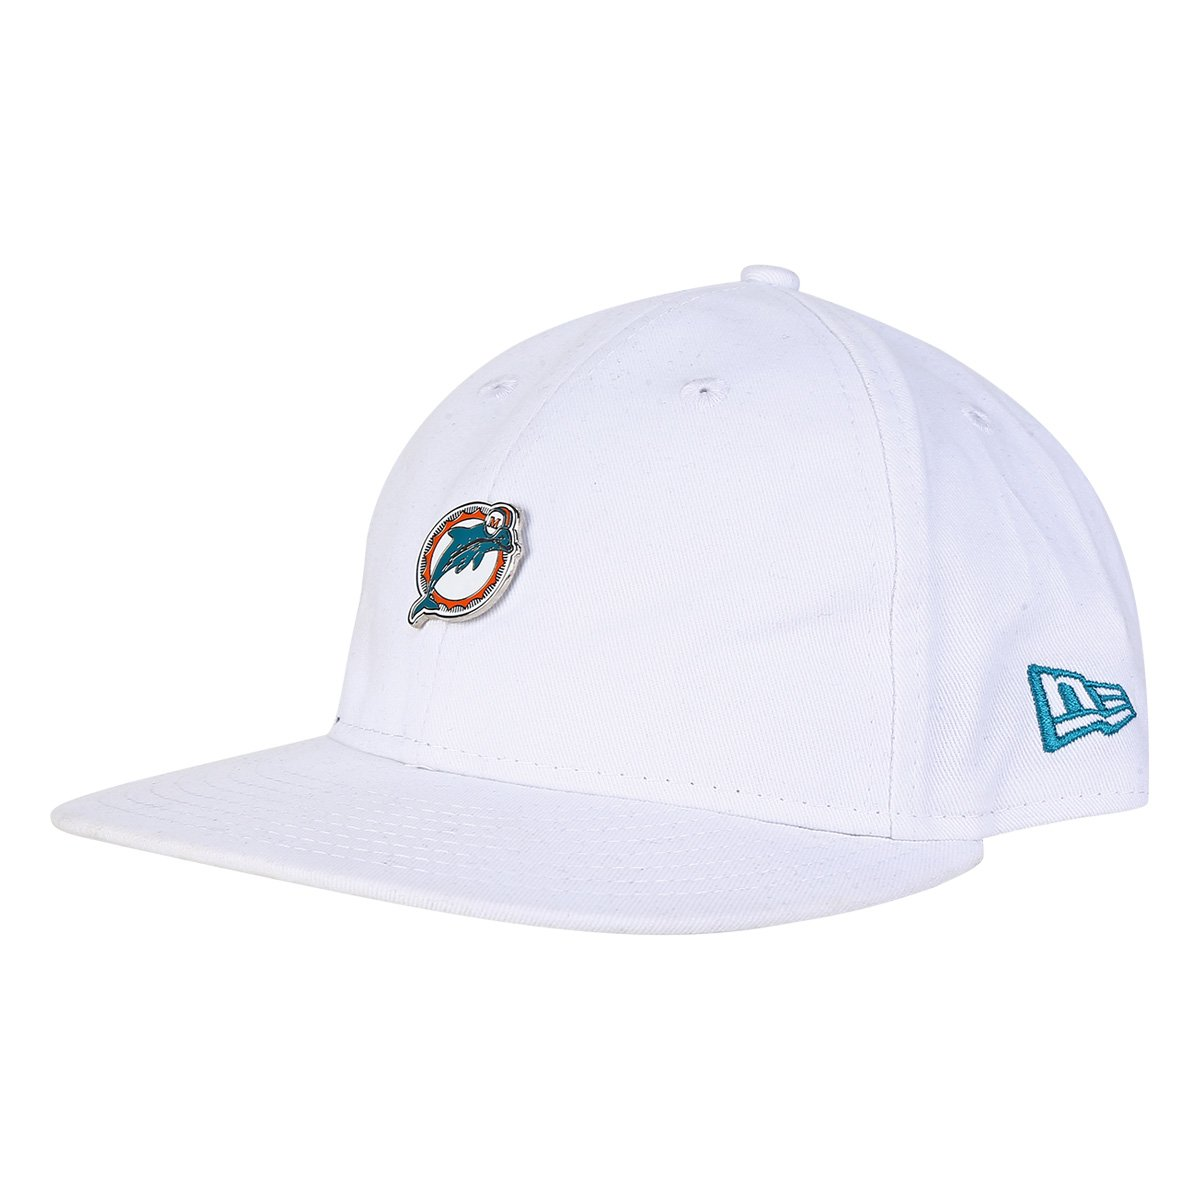 Boné New Era Miami Dolphins Aba Reta 950 Of St Lic